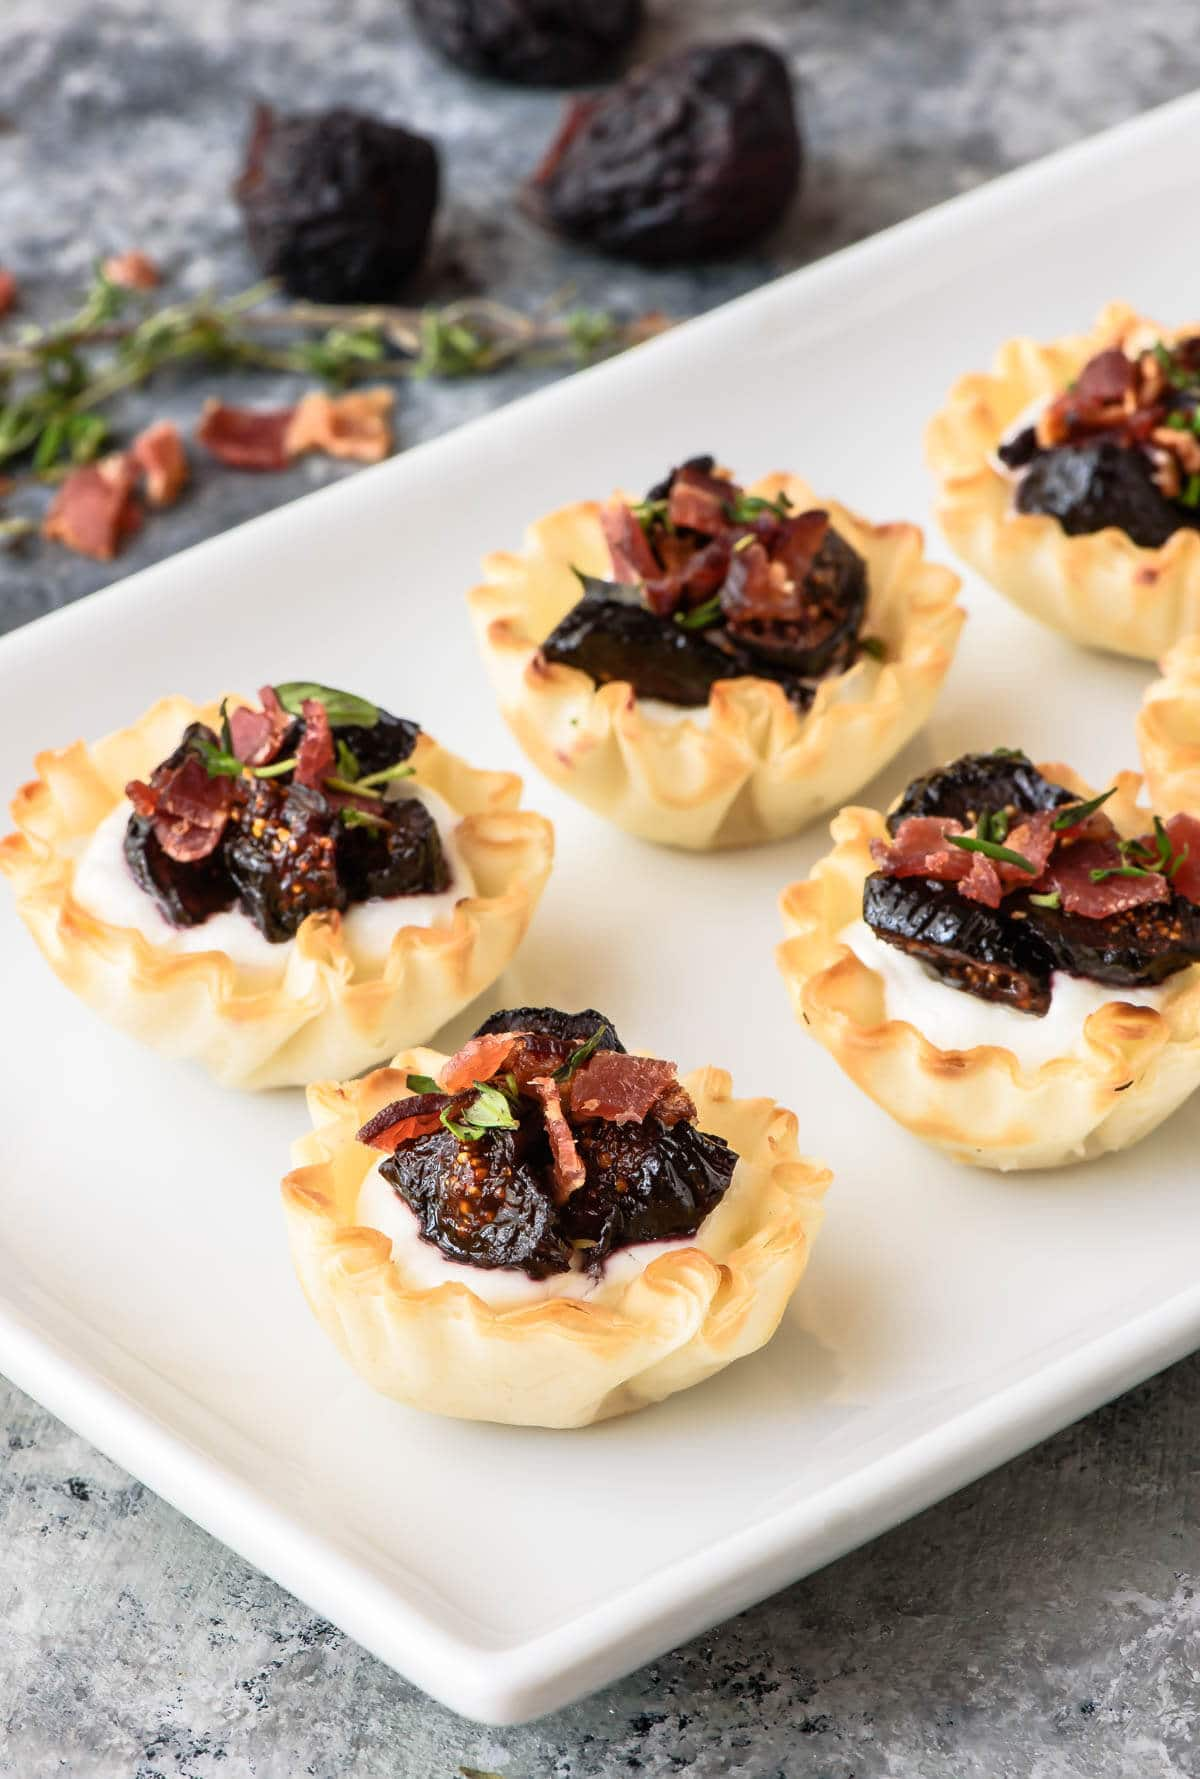 Easy Mini Fig Goat Cheese Bacon Bites in Phyllo Dough. Premade phyllo dough cups make this the easiest but most impressive appetizer recipe!